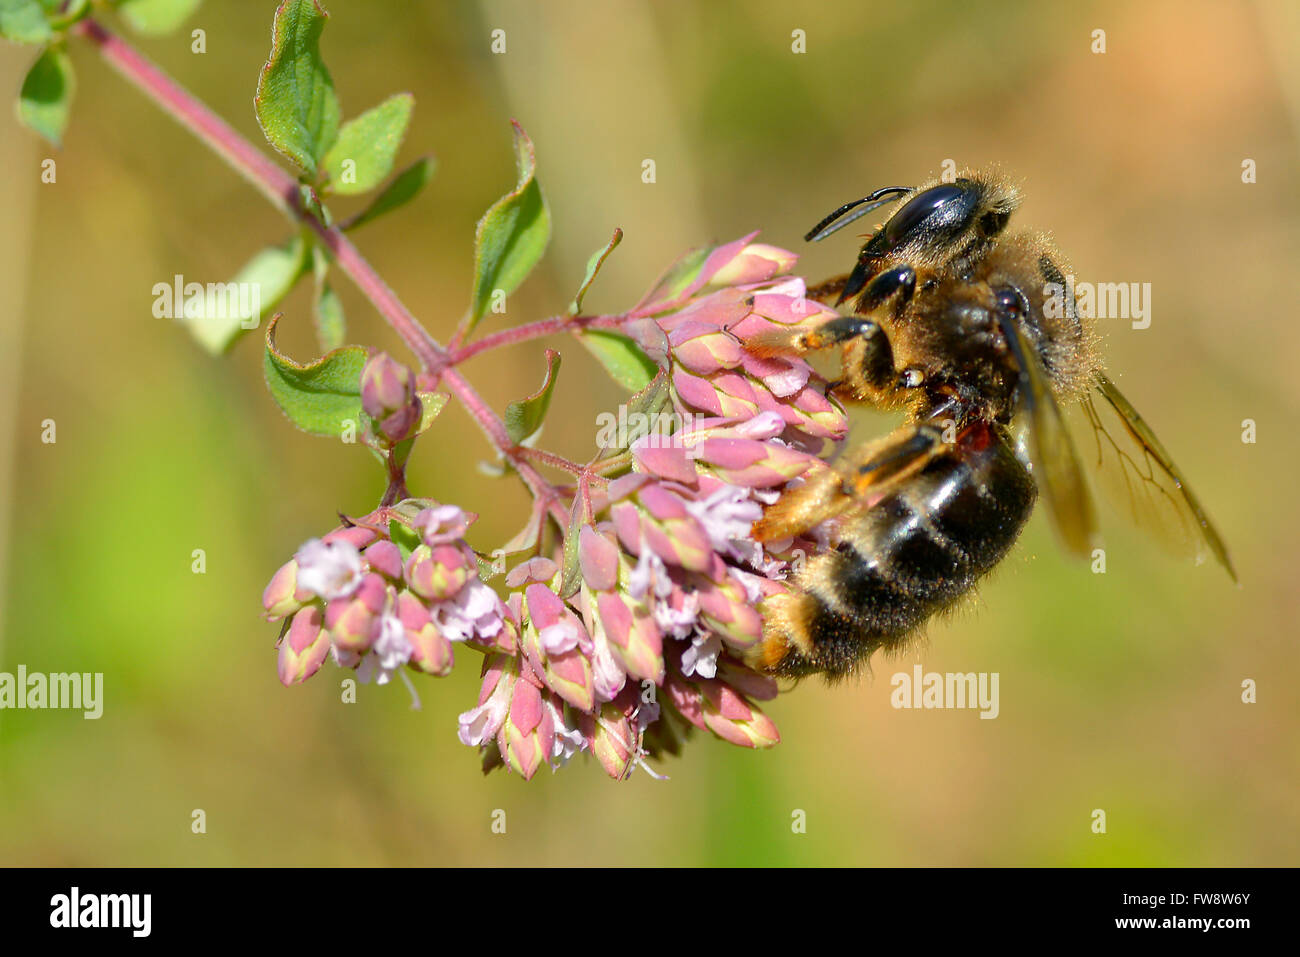 Macro of honey bee (Apis) feeding on pink flower seen from profile - Stock Image